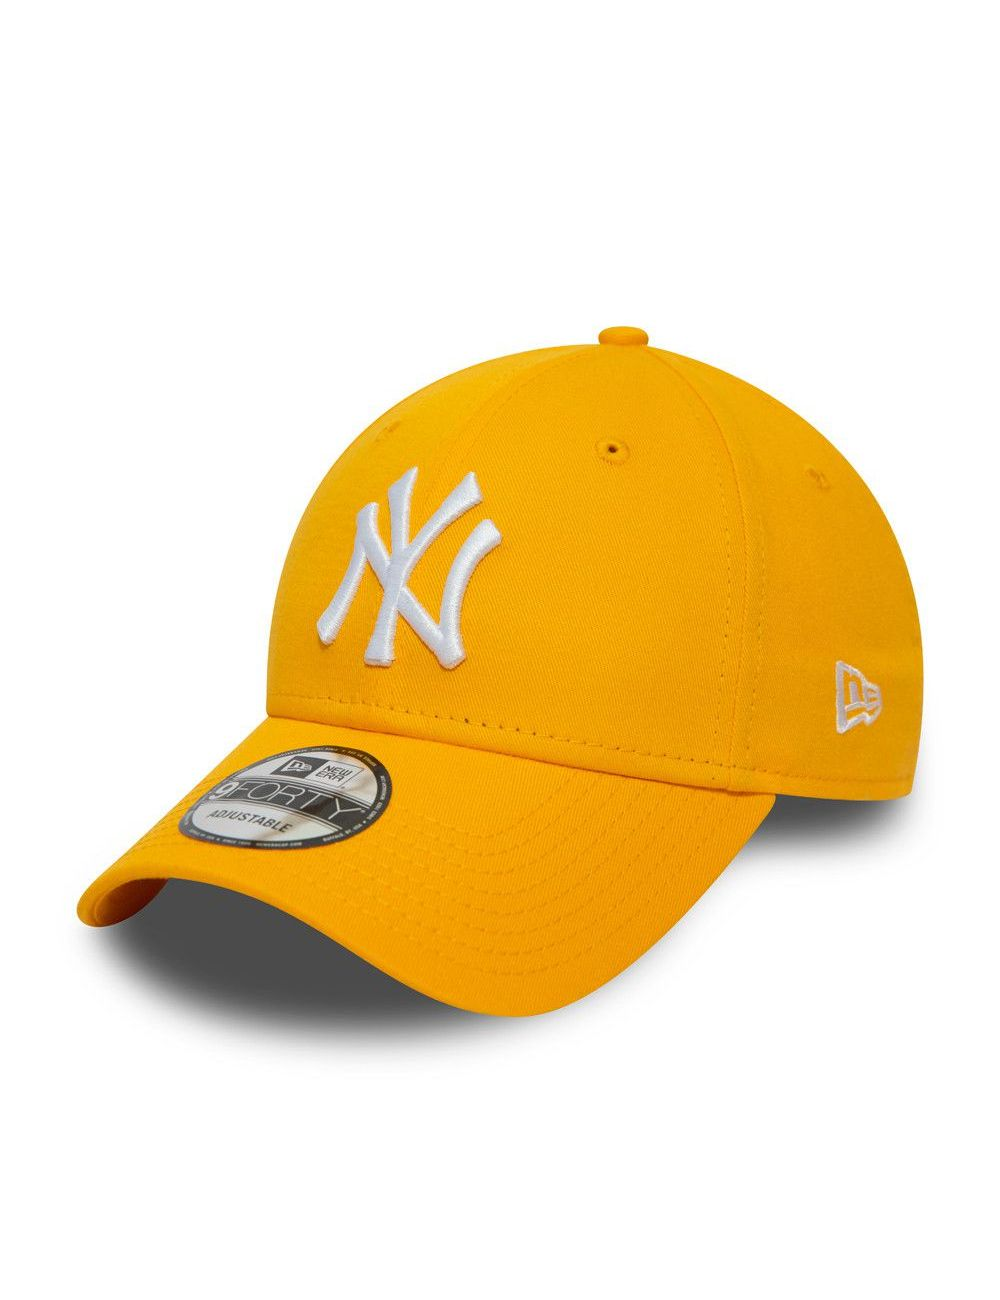 Casquette New Era 9Forty Ligue Essential NY Yankees jaune 12380596